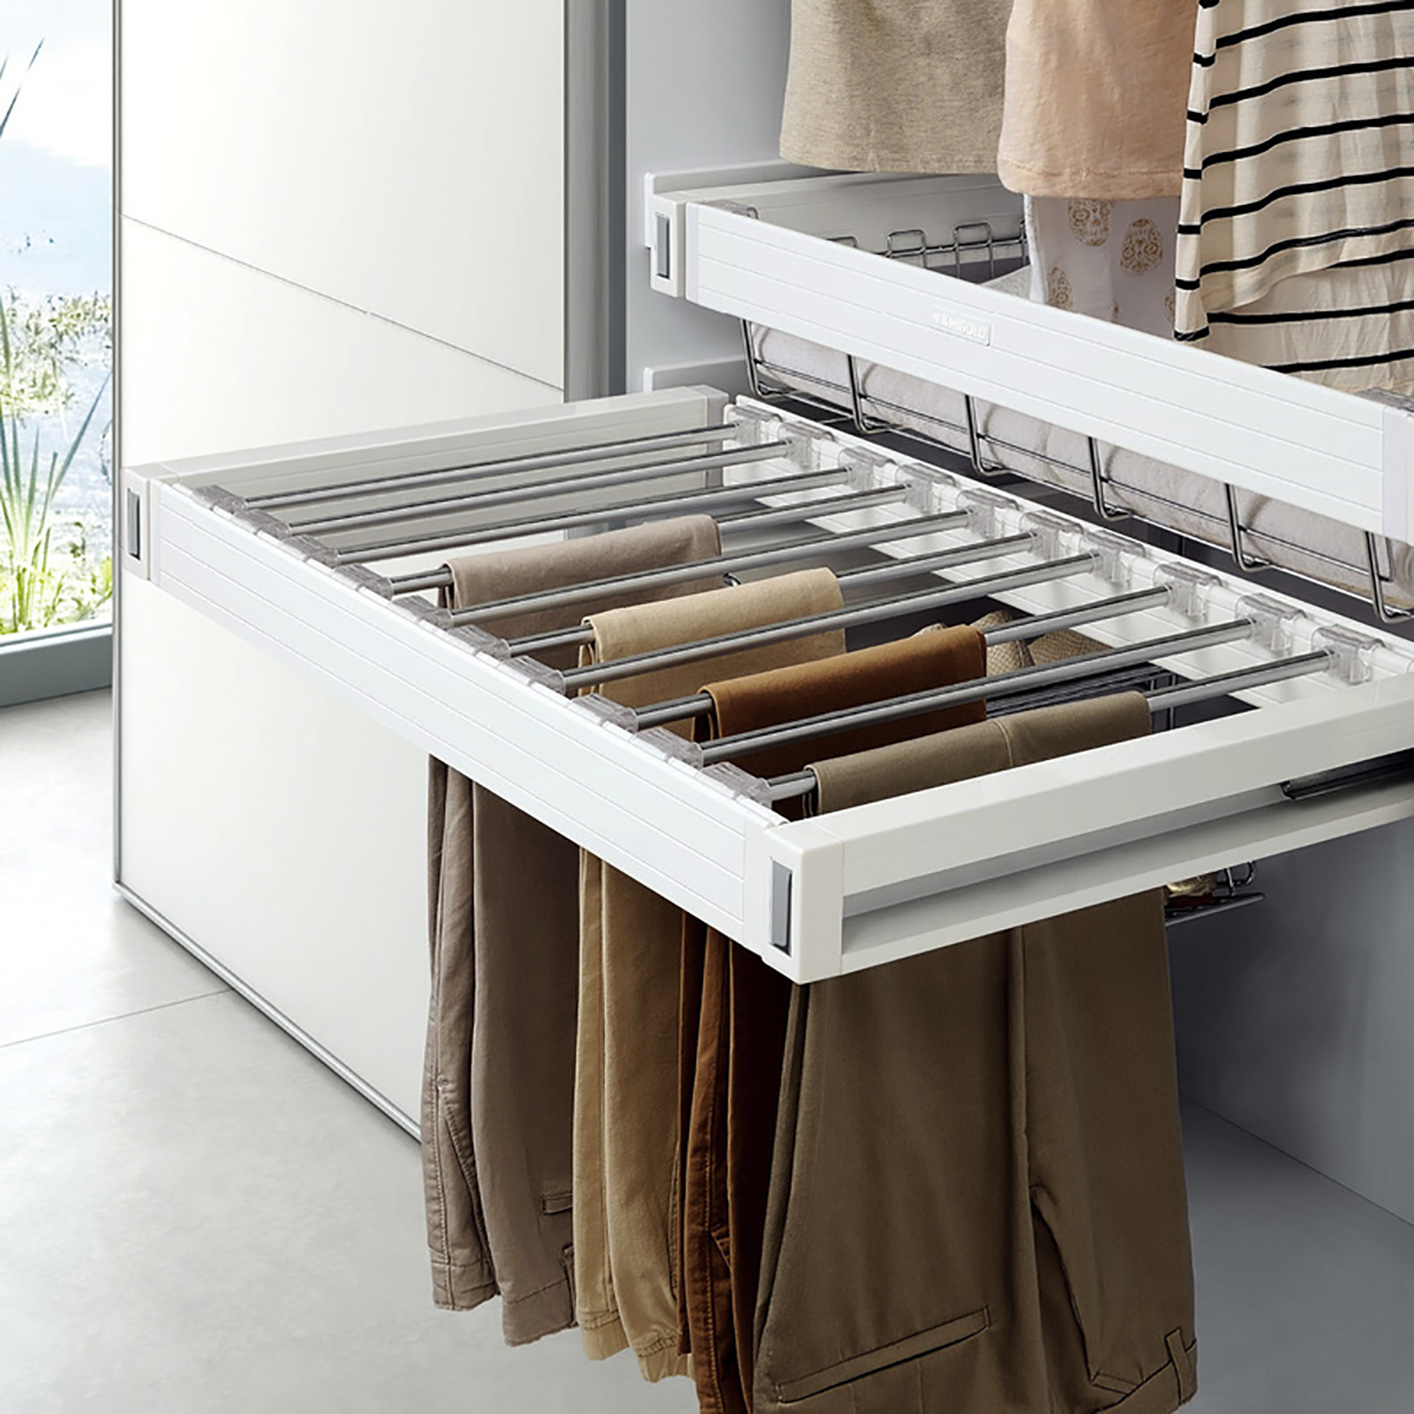 Kitchen Wardrobe Accessories: Symmetry Pant Rack Pull-Out W/Tray Soft Close (800mm